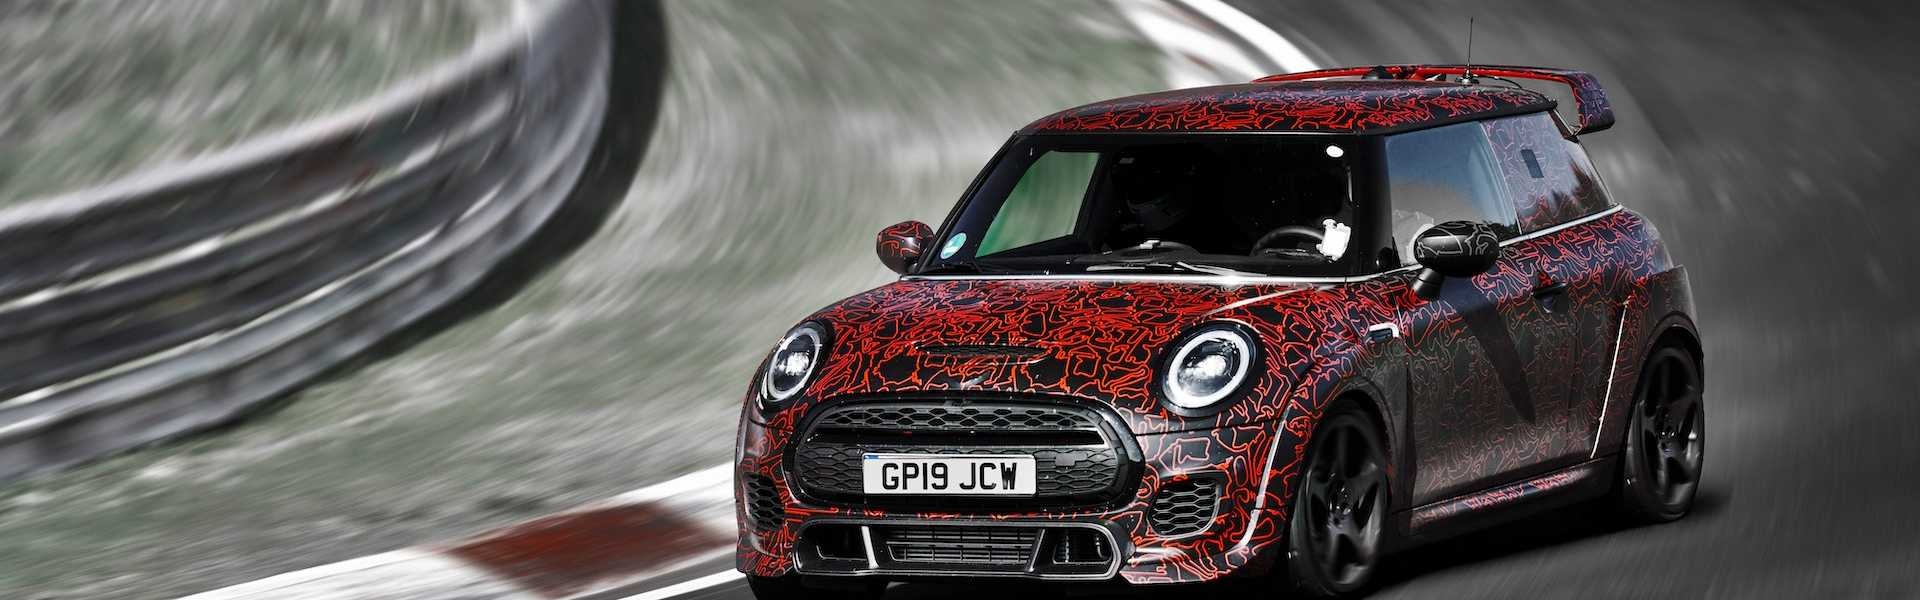 2020-mini-john-cooper-works-gp-prototype.jpg